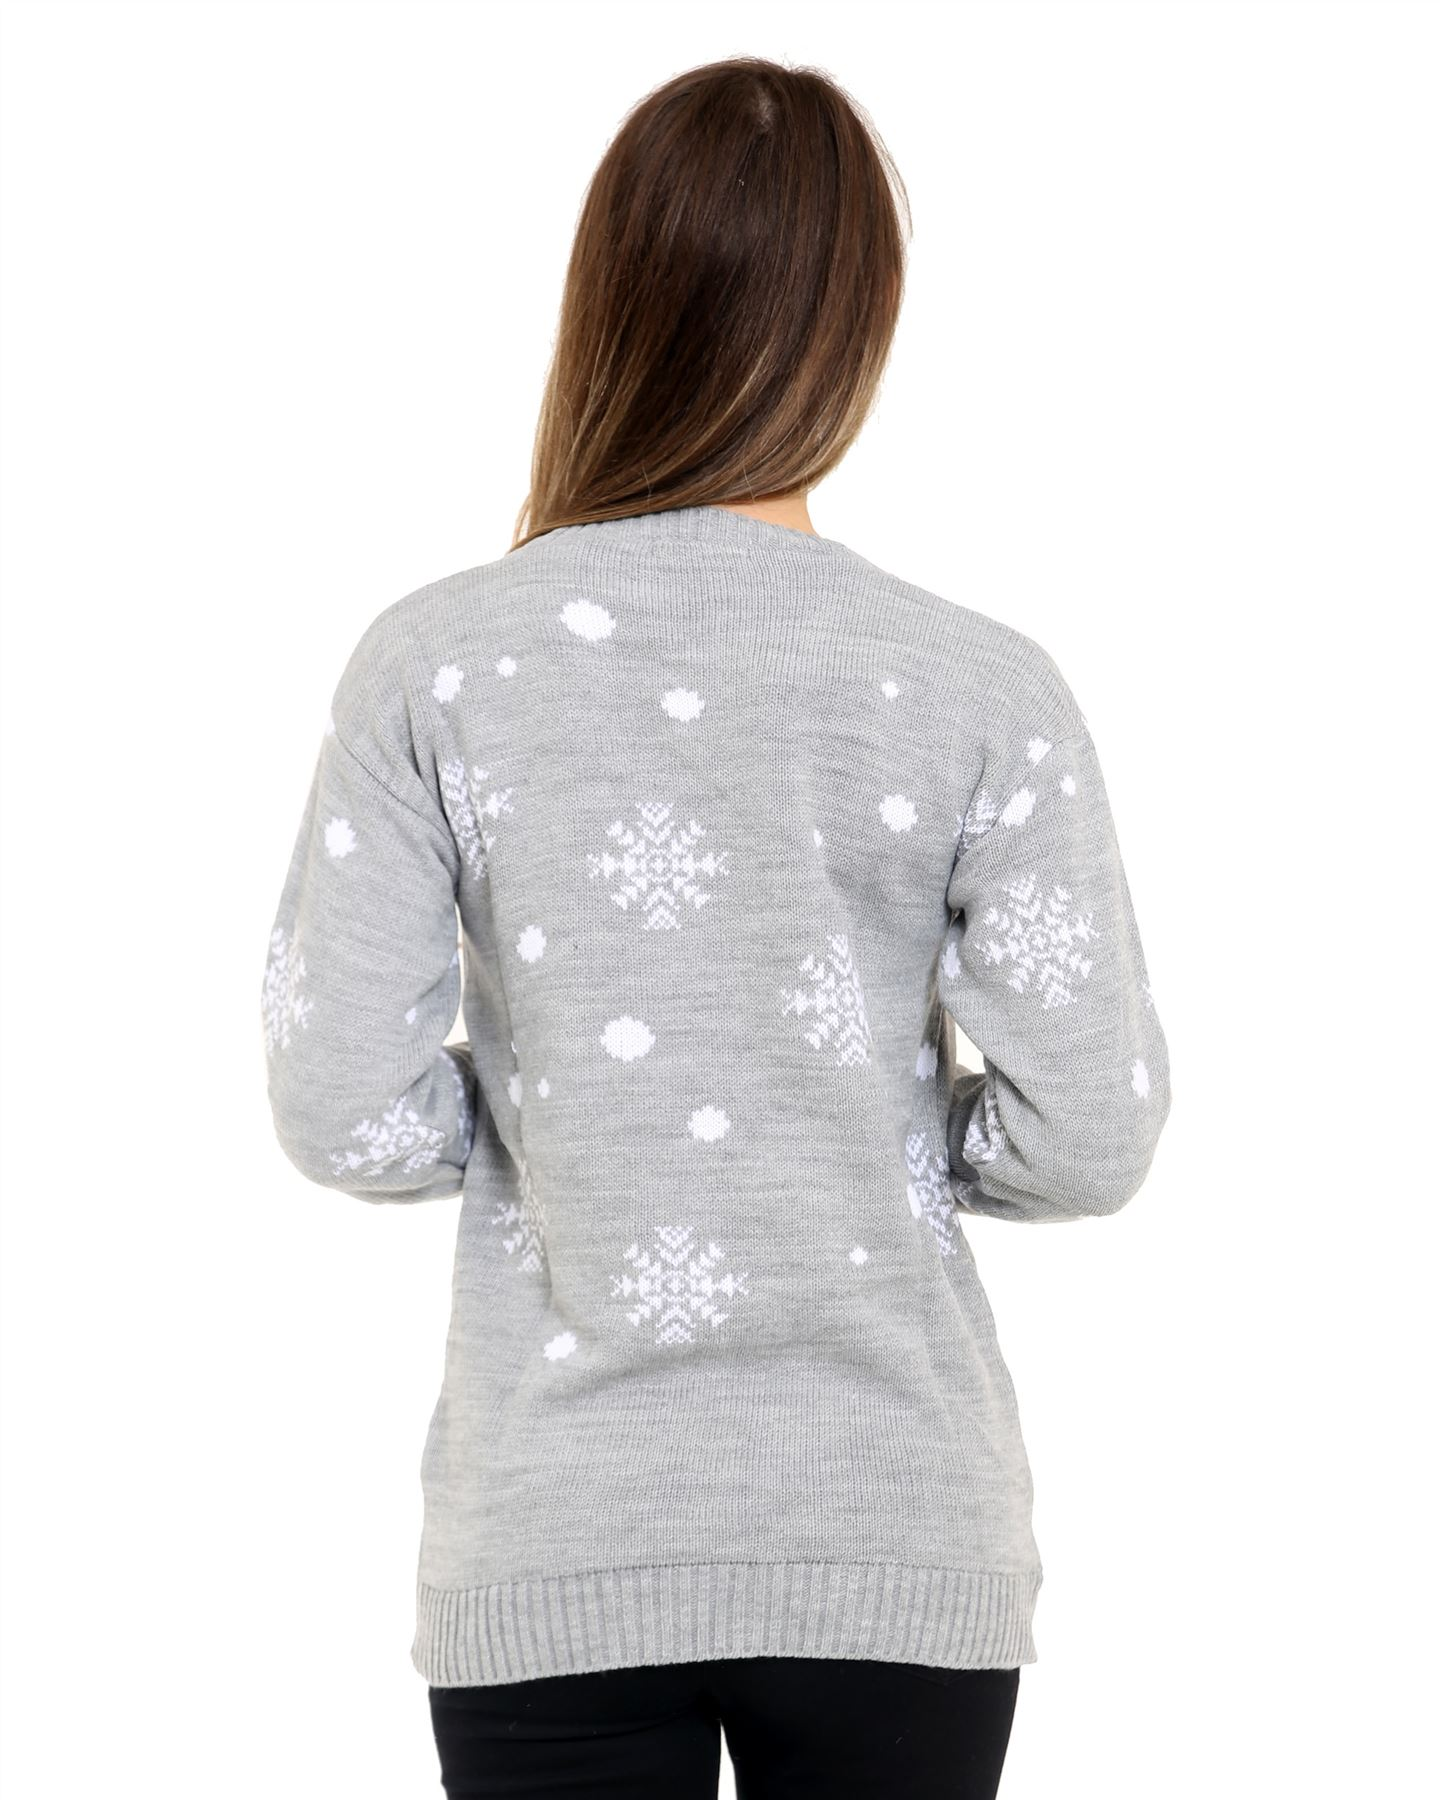 women christmas pullover knitted knitted christmas jumpers women reviews: knitted pullover christmas woman men christmas knitted jumpers knitted christmas jumpers men women christmas sweaters cotton cotton christmas sweaters women mens christmas knitted jumpers. Related Categories Women's Clothing & Accessories.